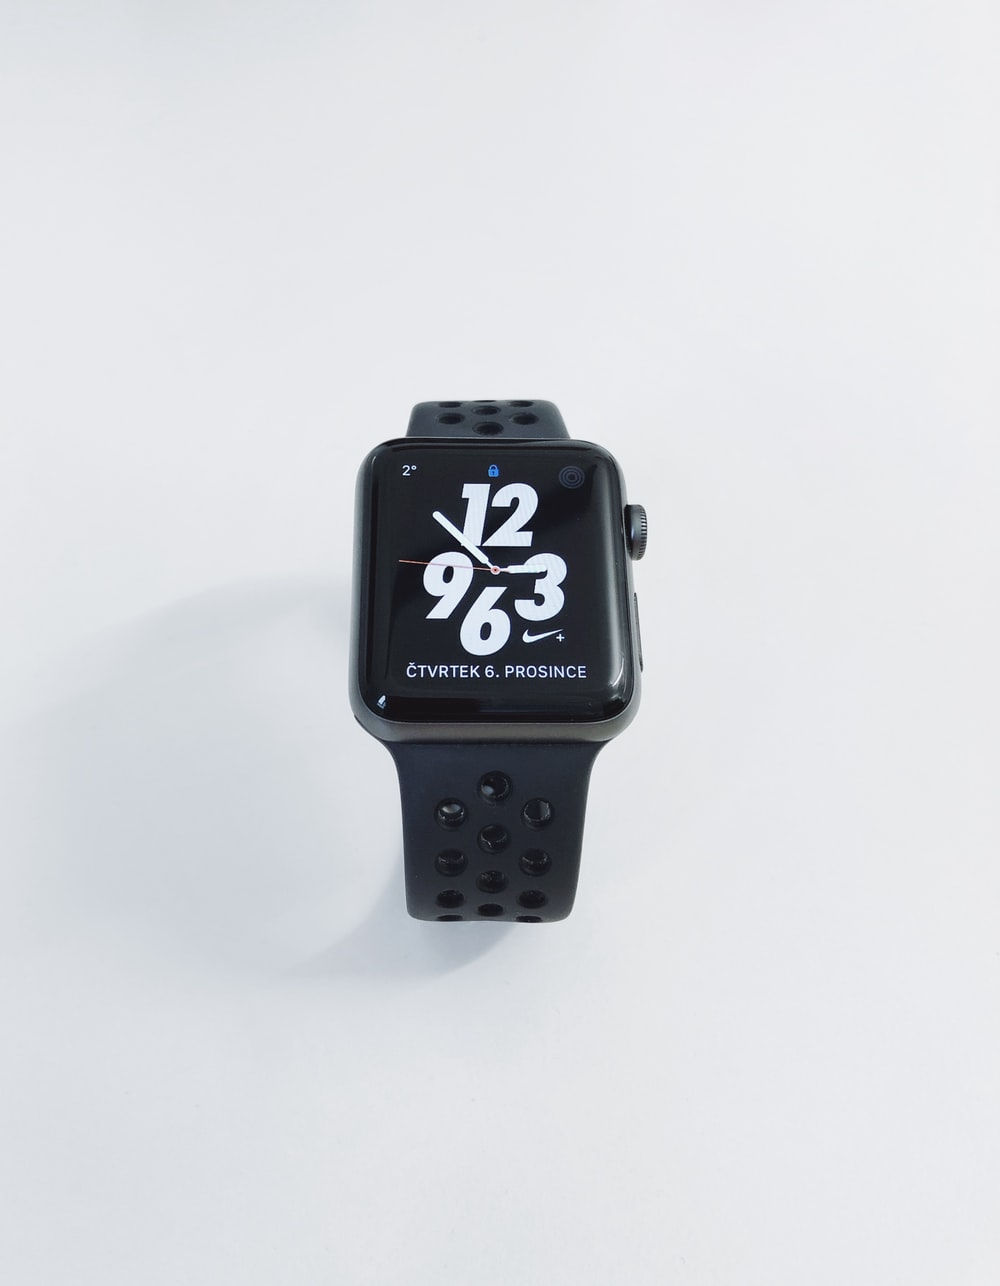 Apple Watch at 3:58